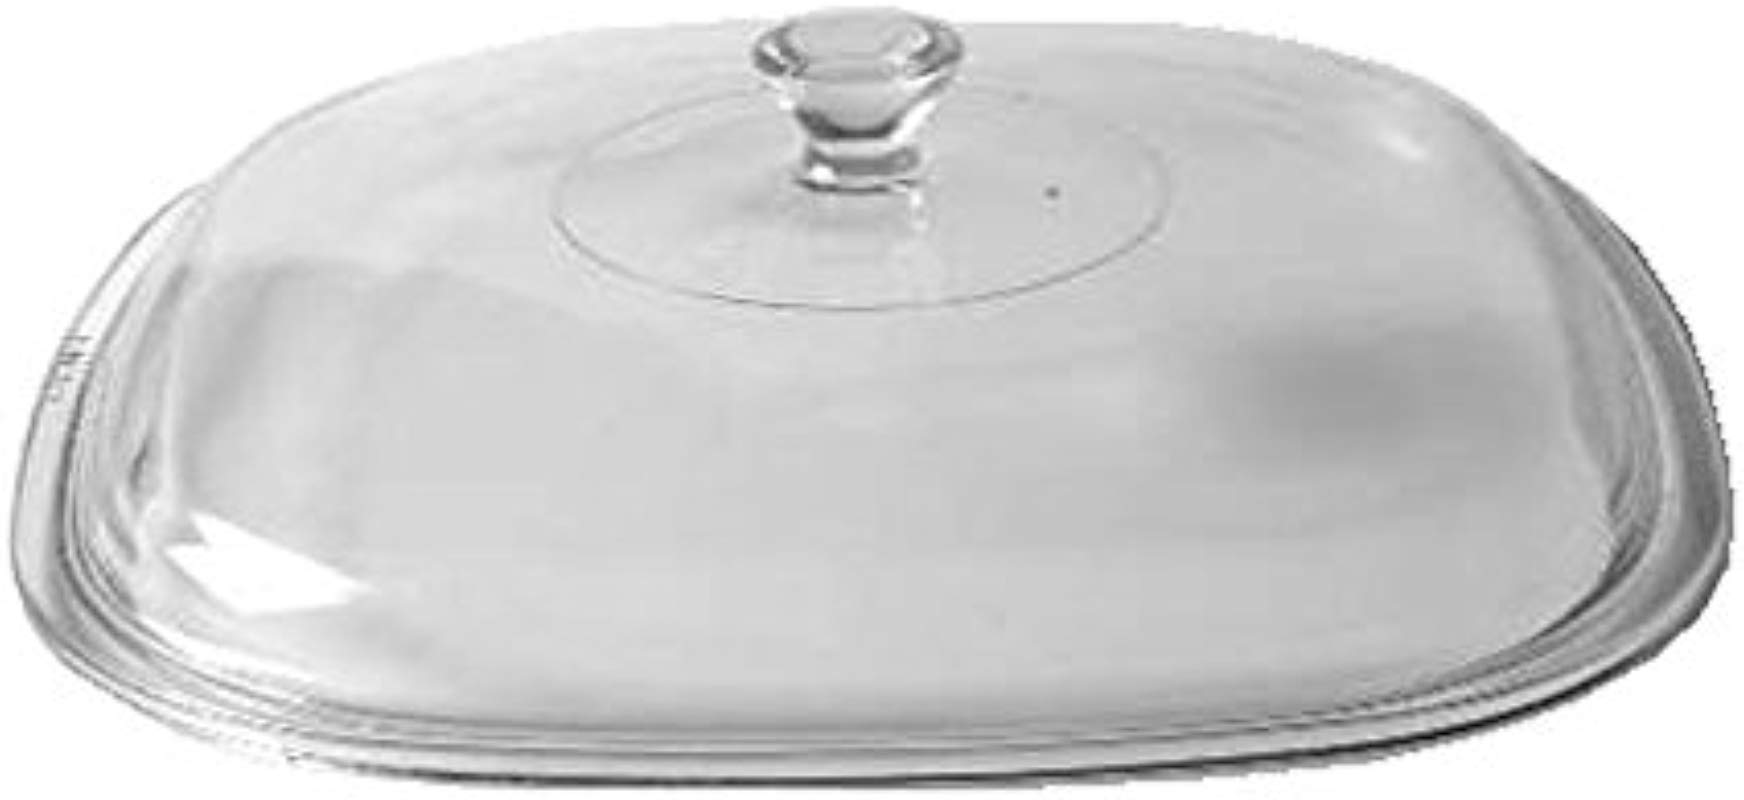 Corning Ware Pyrex Clear Square Glass Lid 9 1 4 Width P 10 C 1